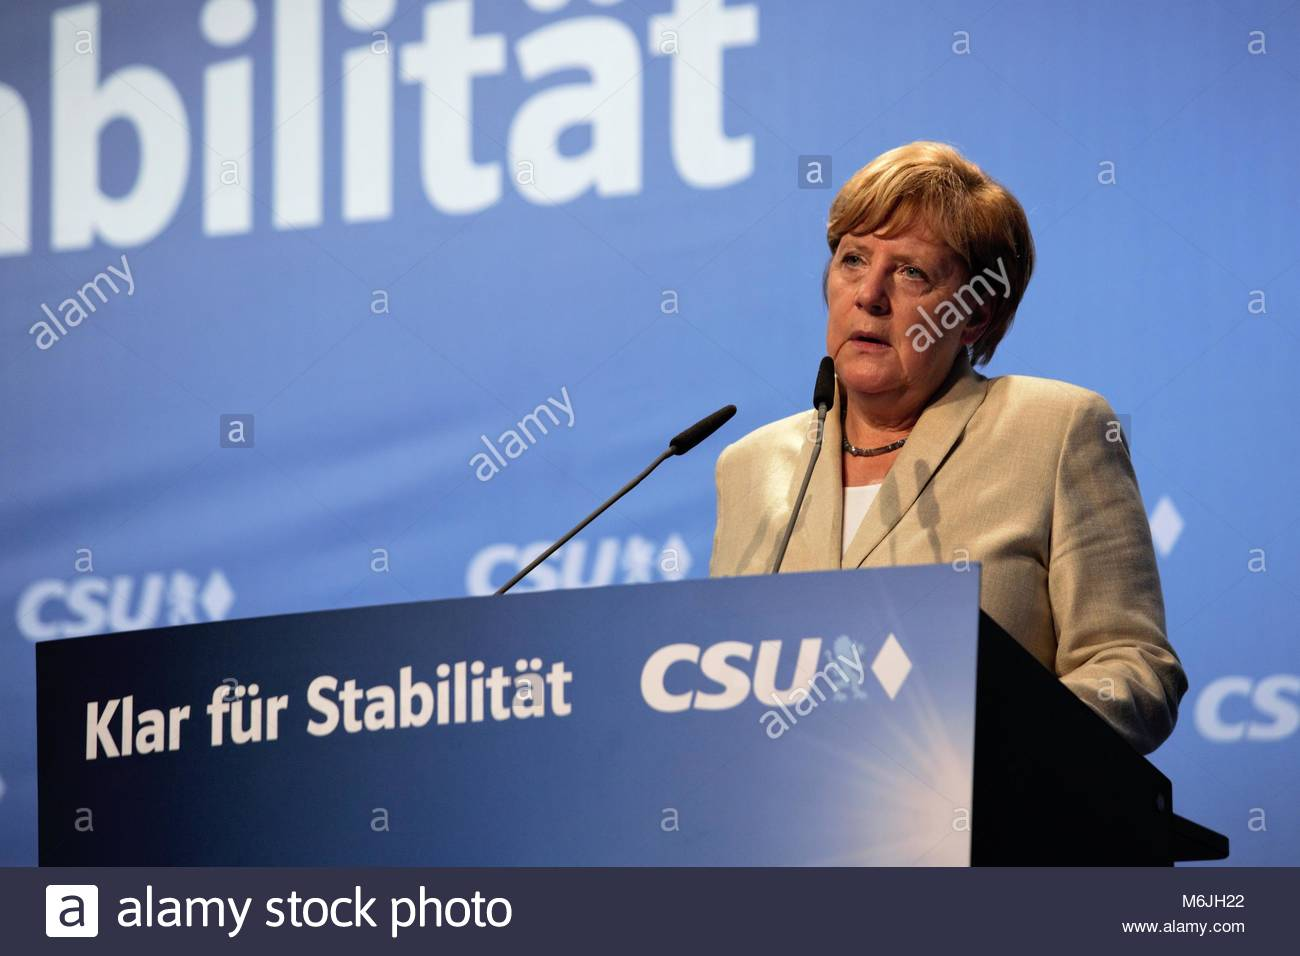 The German chancellor, Angela Merkel, at an election rally in Erlangen, Bavaria, in August 2017. - Stock Image